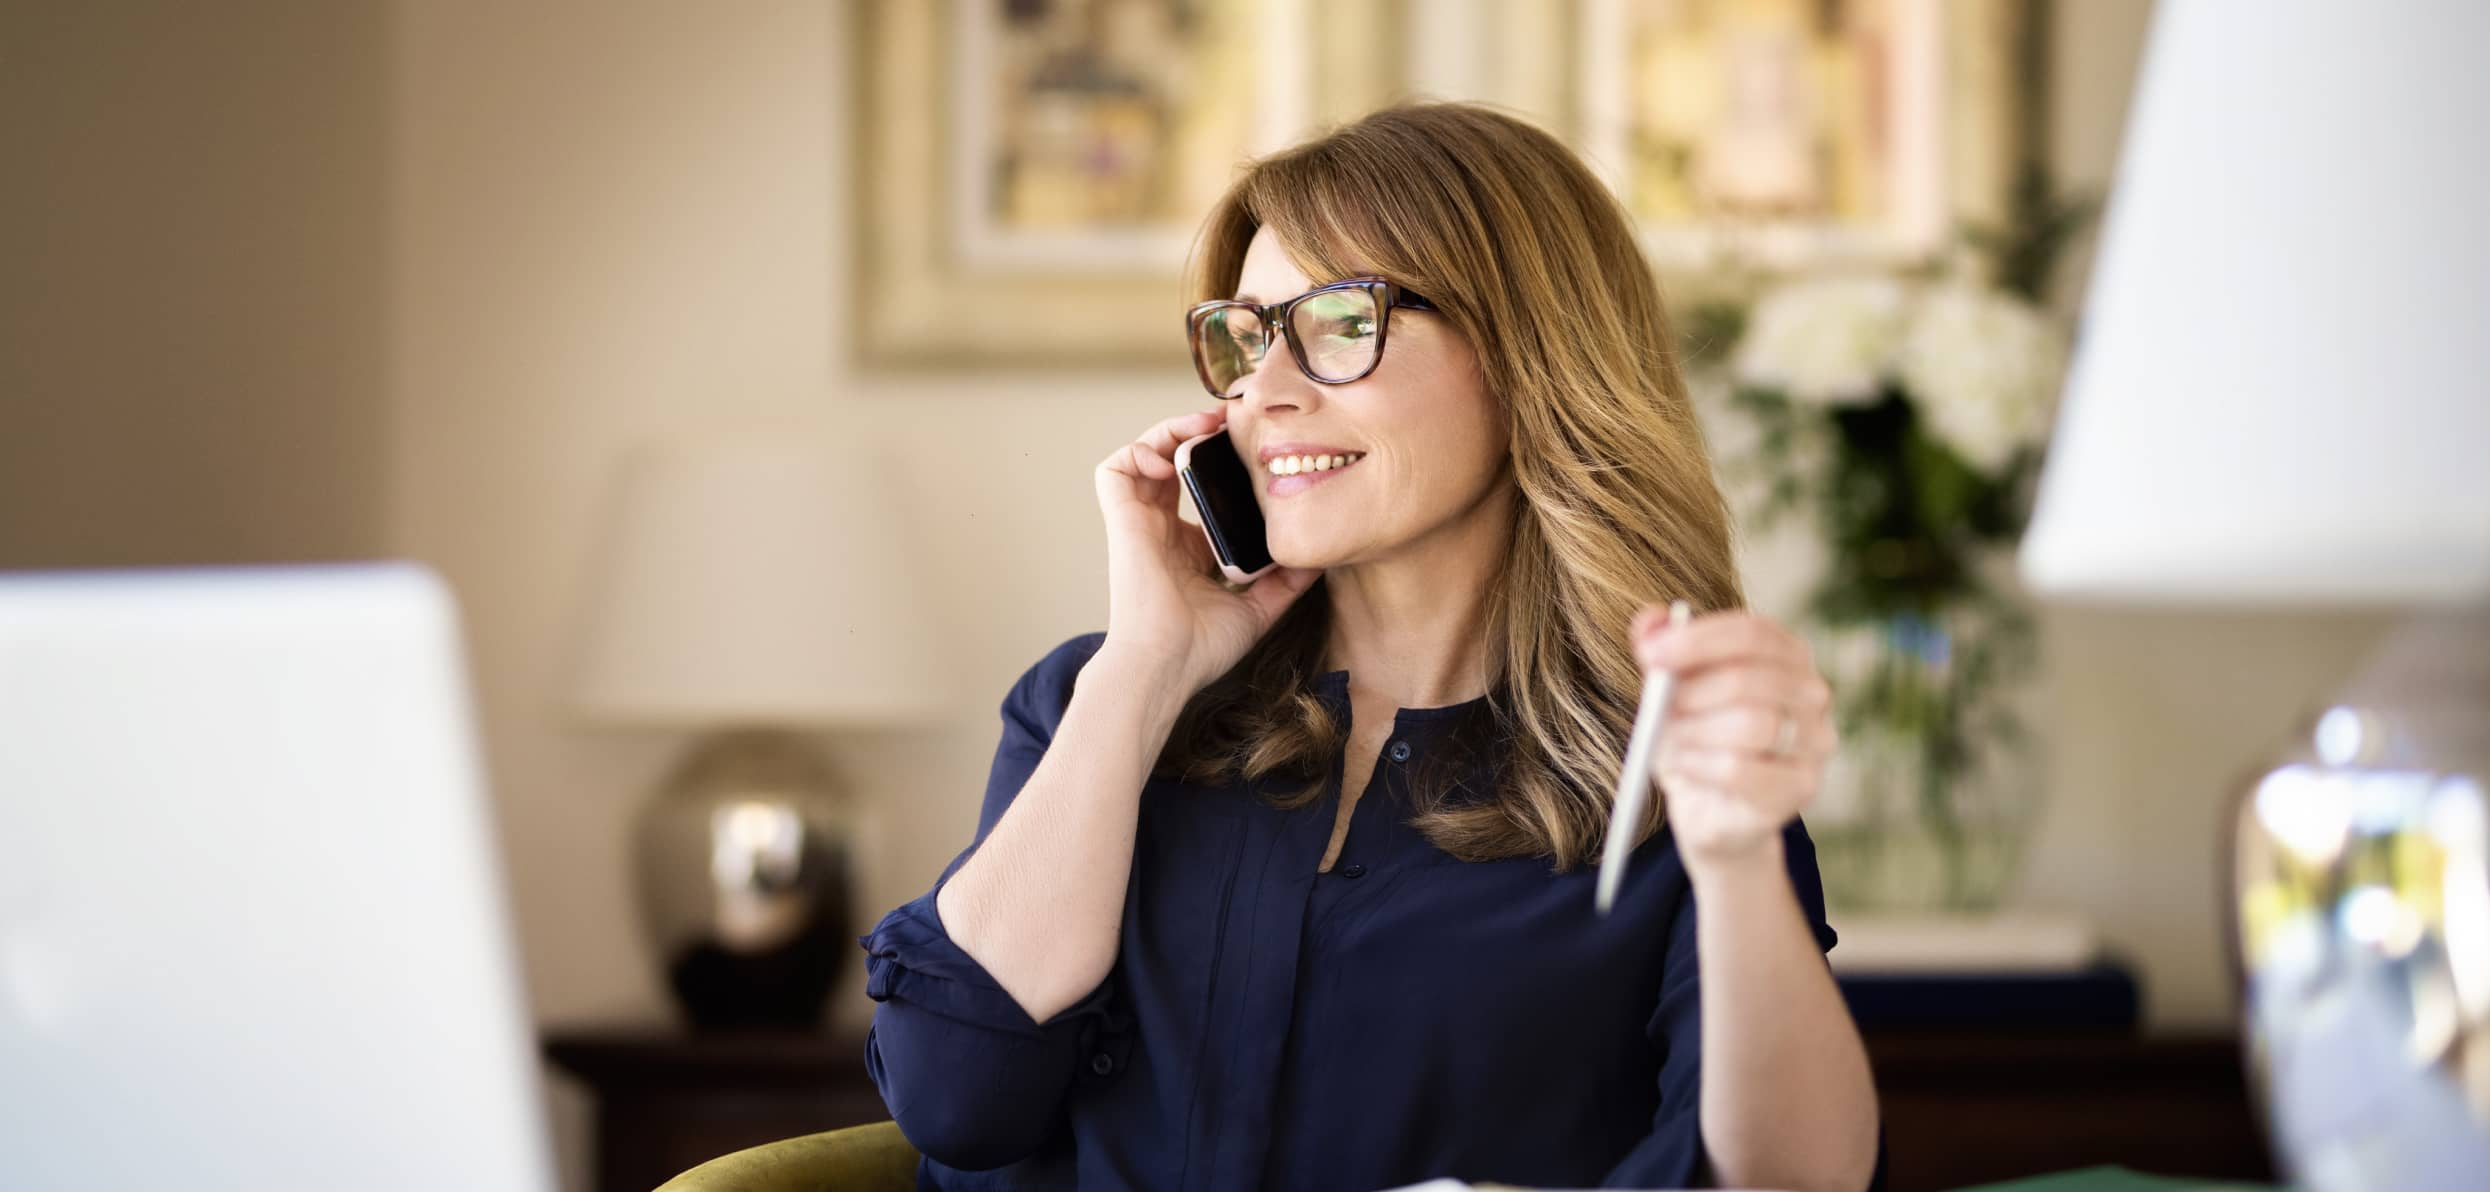 Woman taking a call in the office - menopause in the workplace